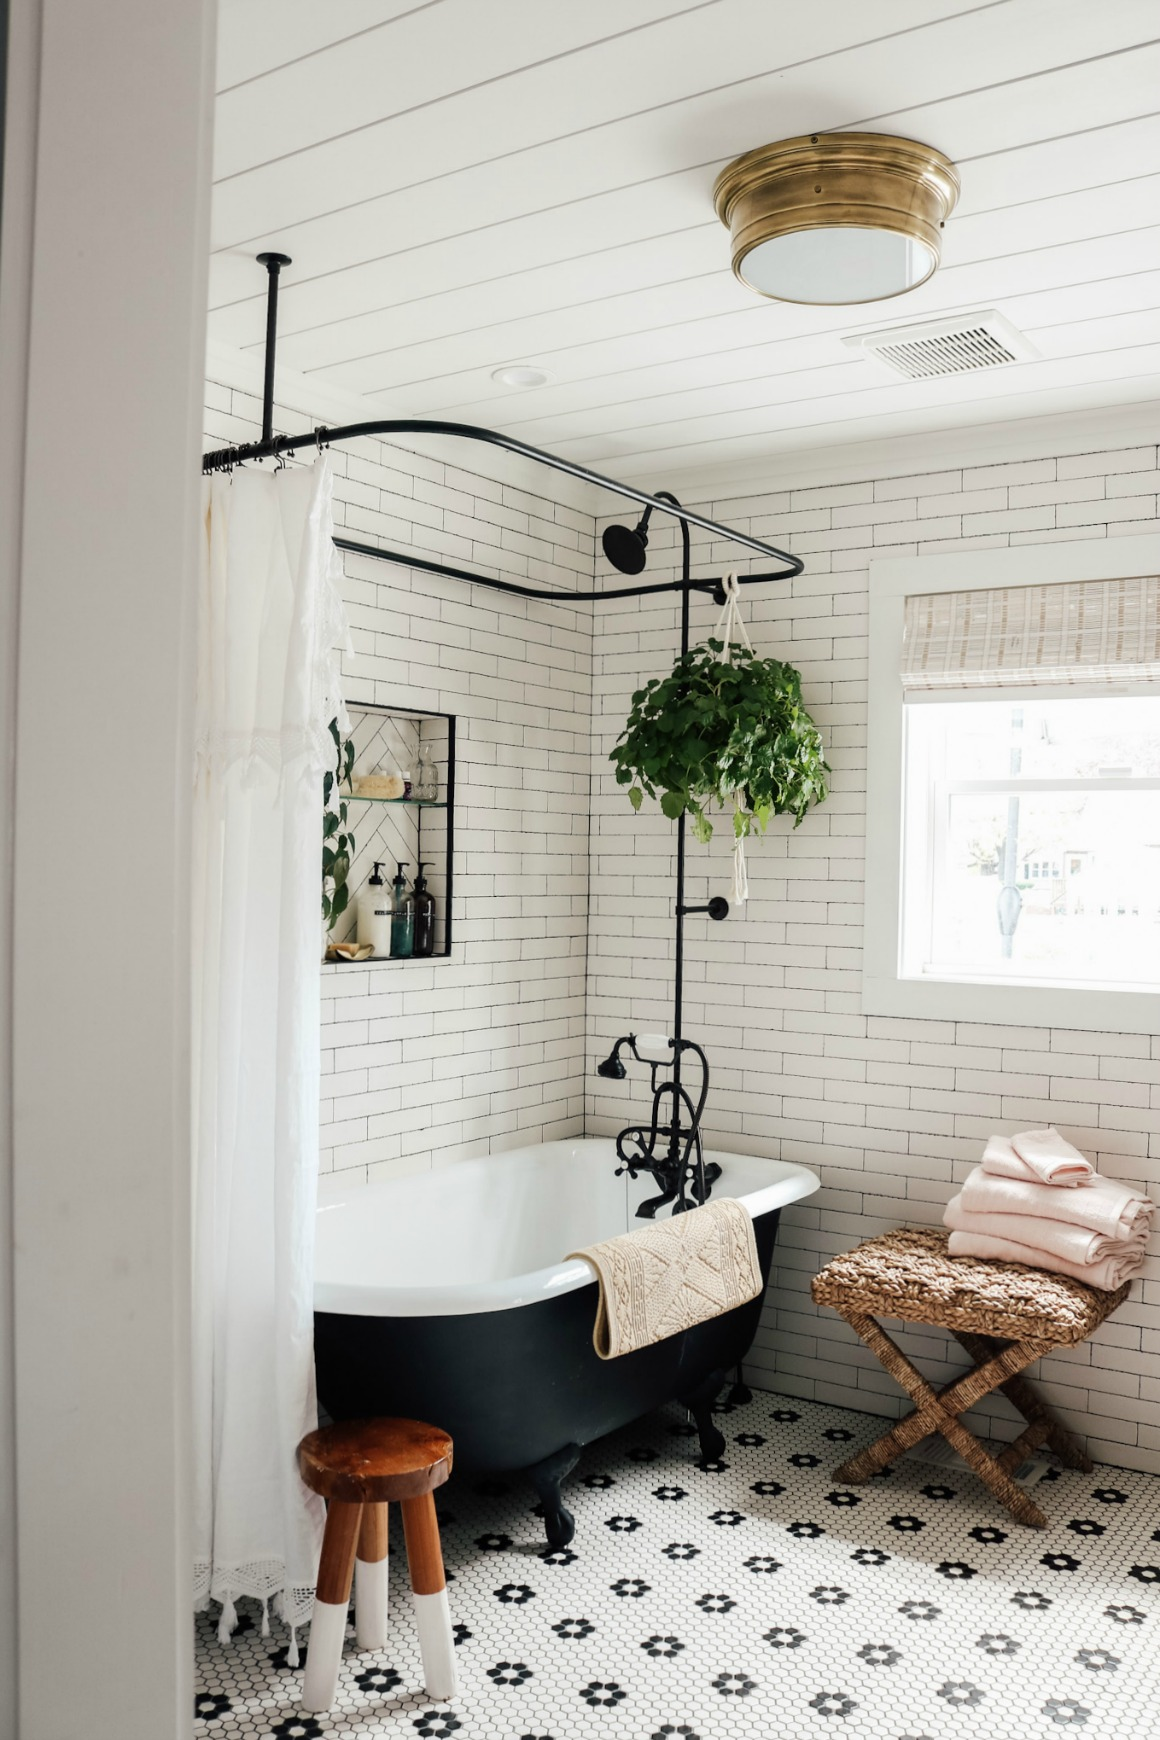 Master Bathroom Reveal with Claw Foot Tub